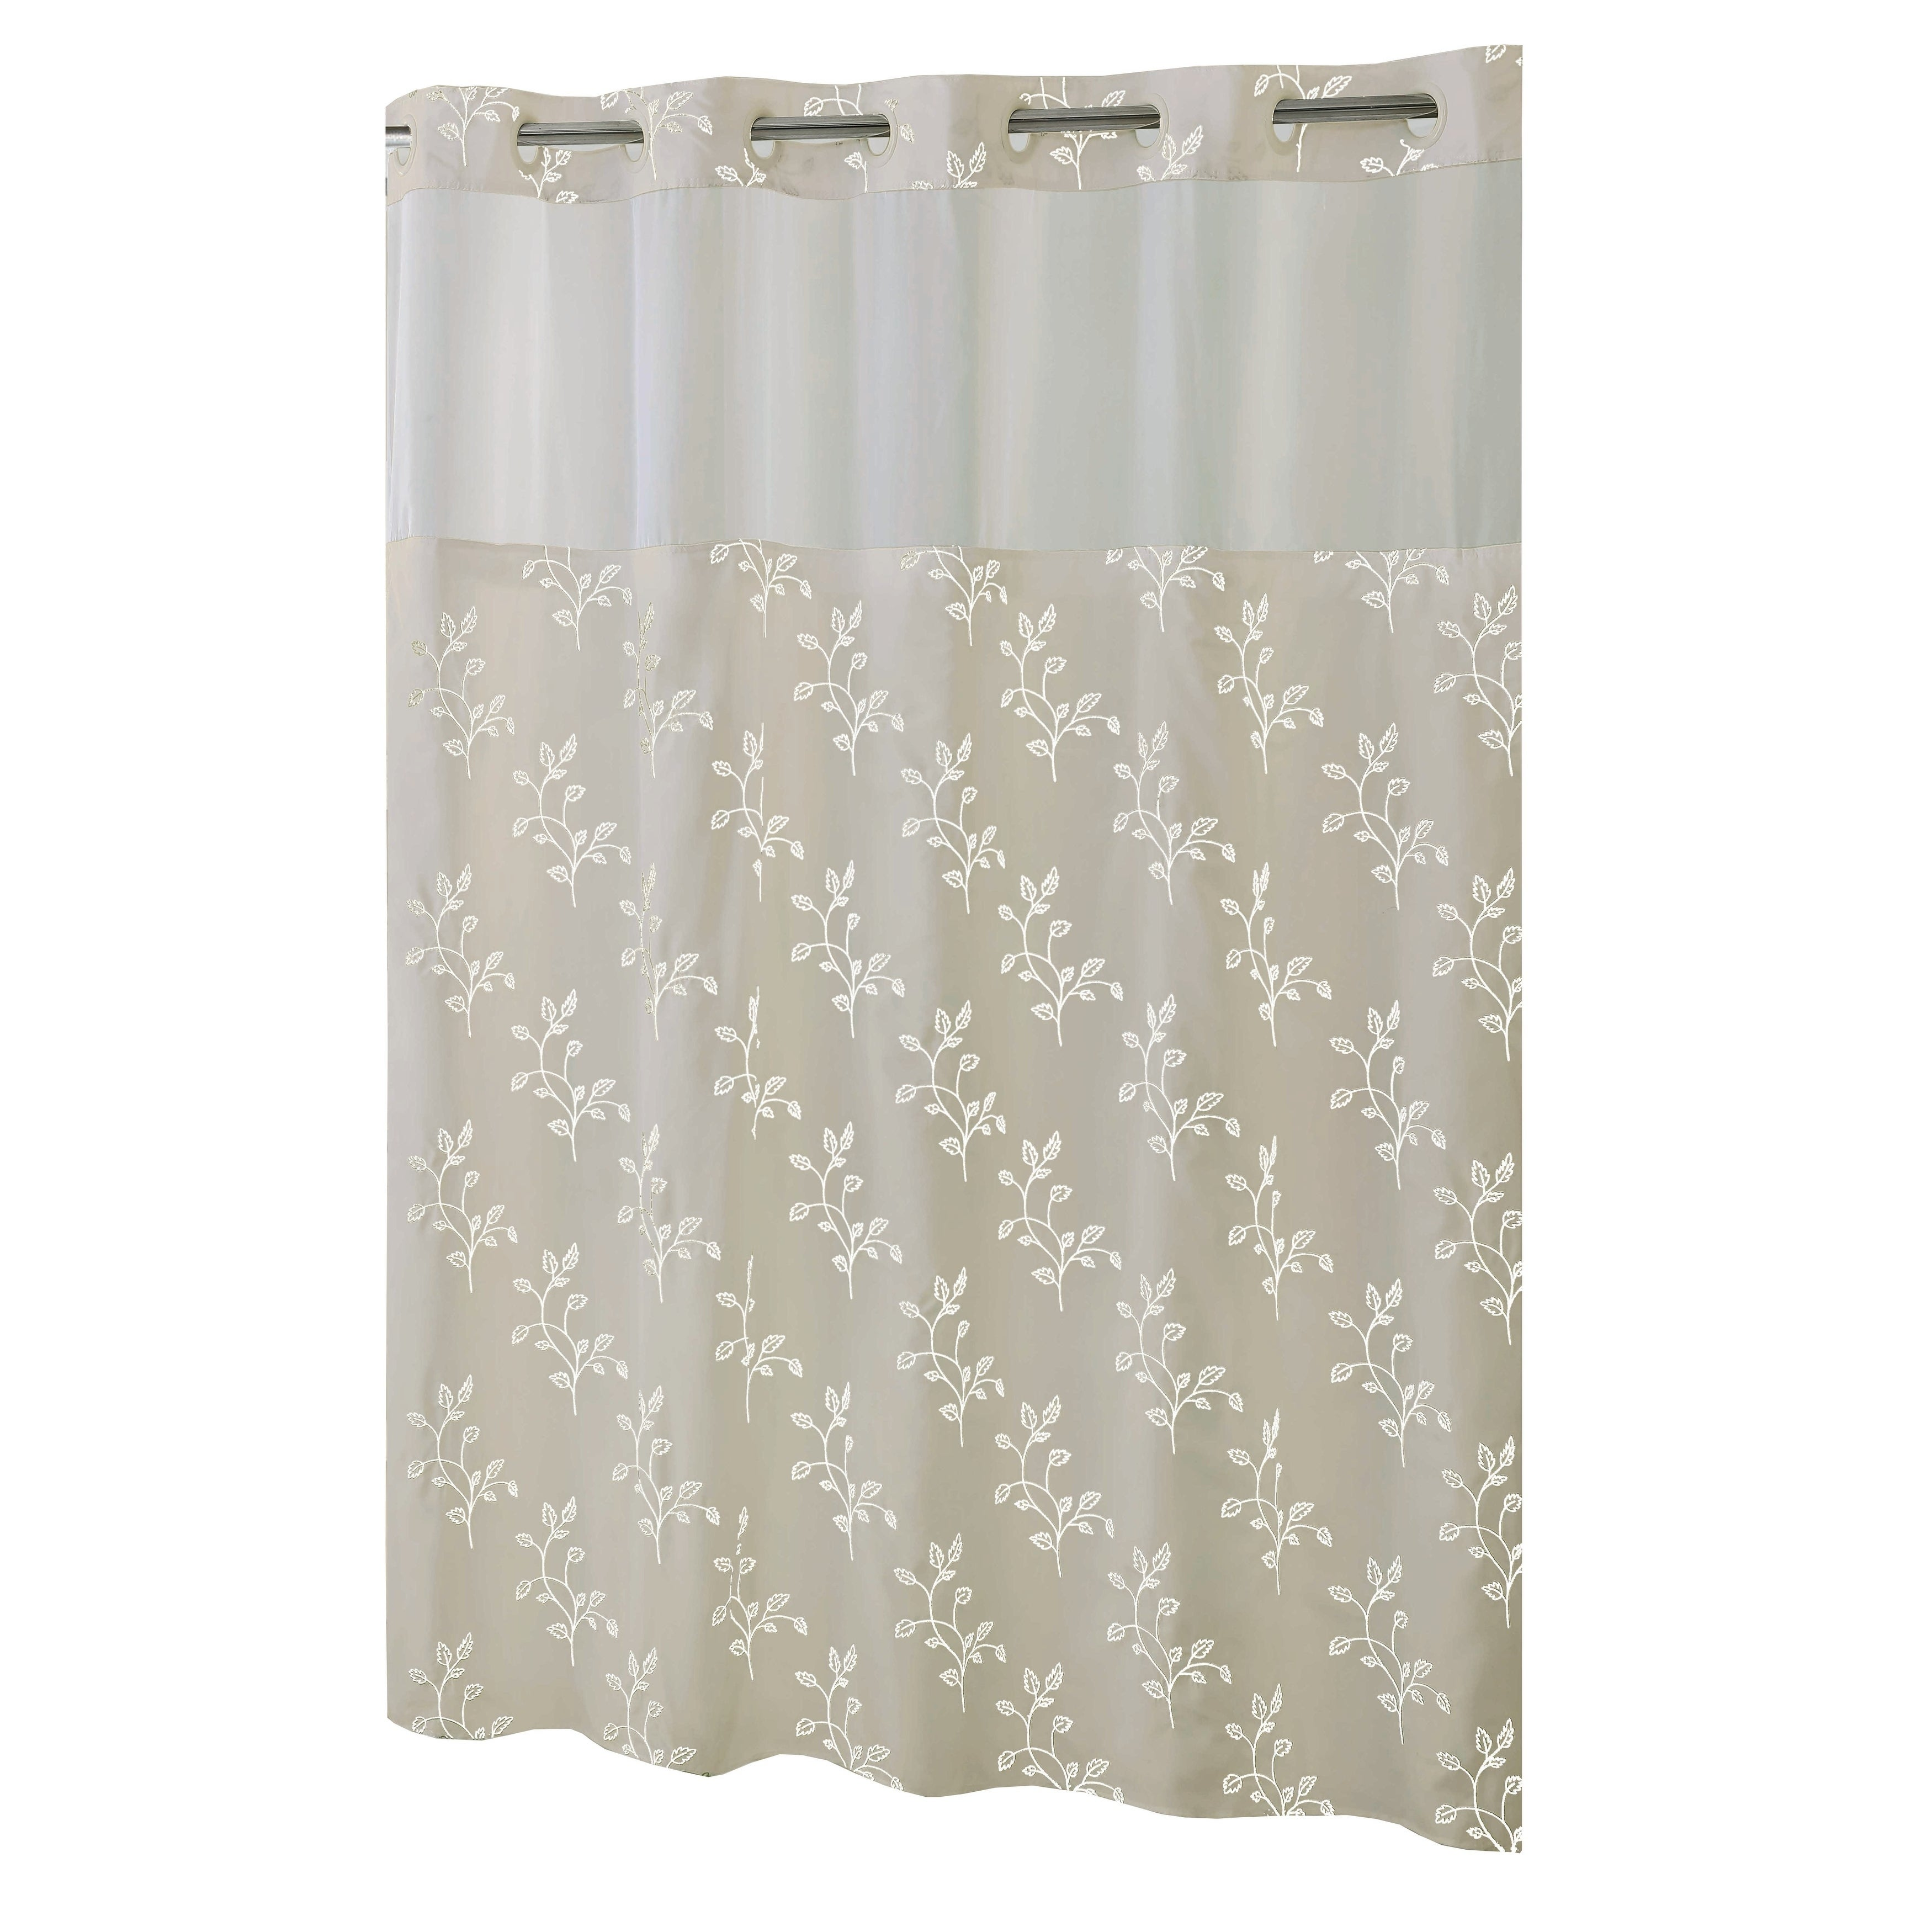 Shop HooklessR Shower Curtain Spring Leaves Taupe